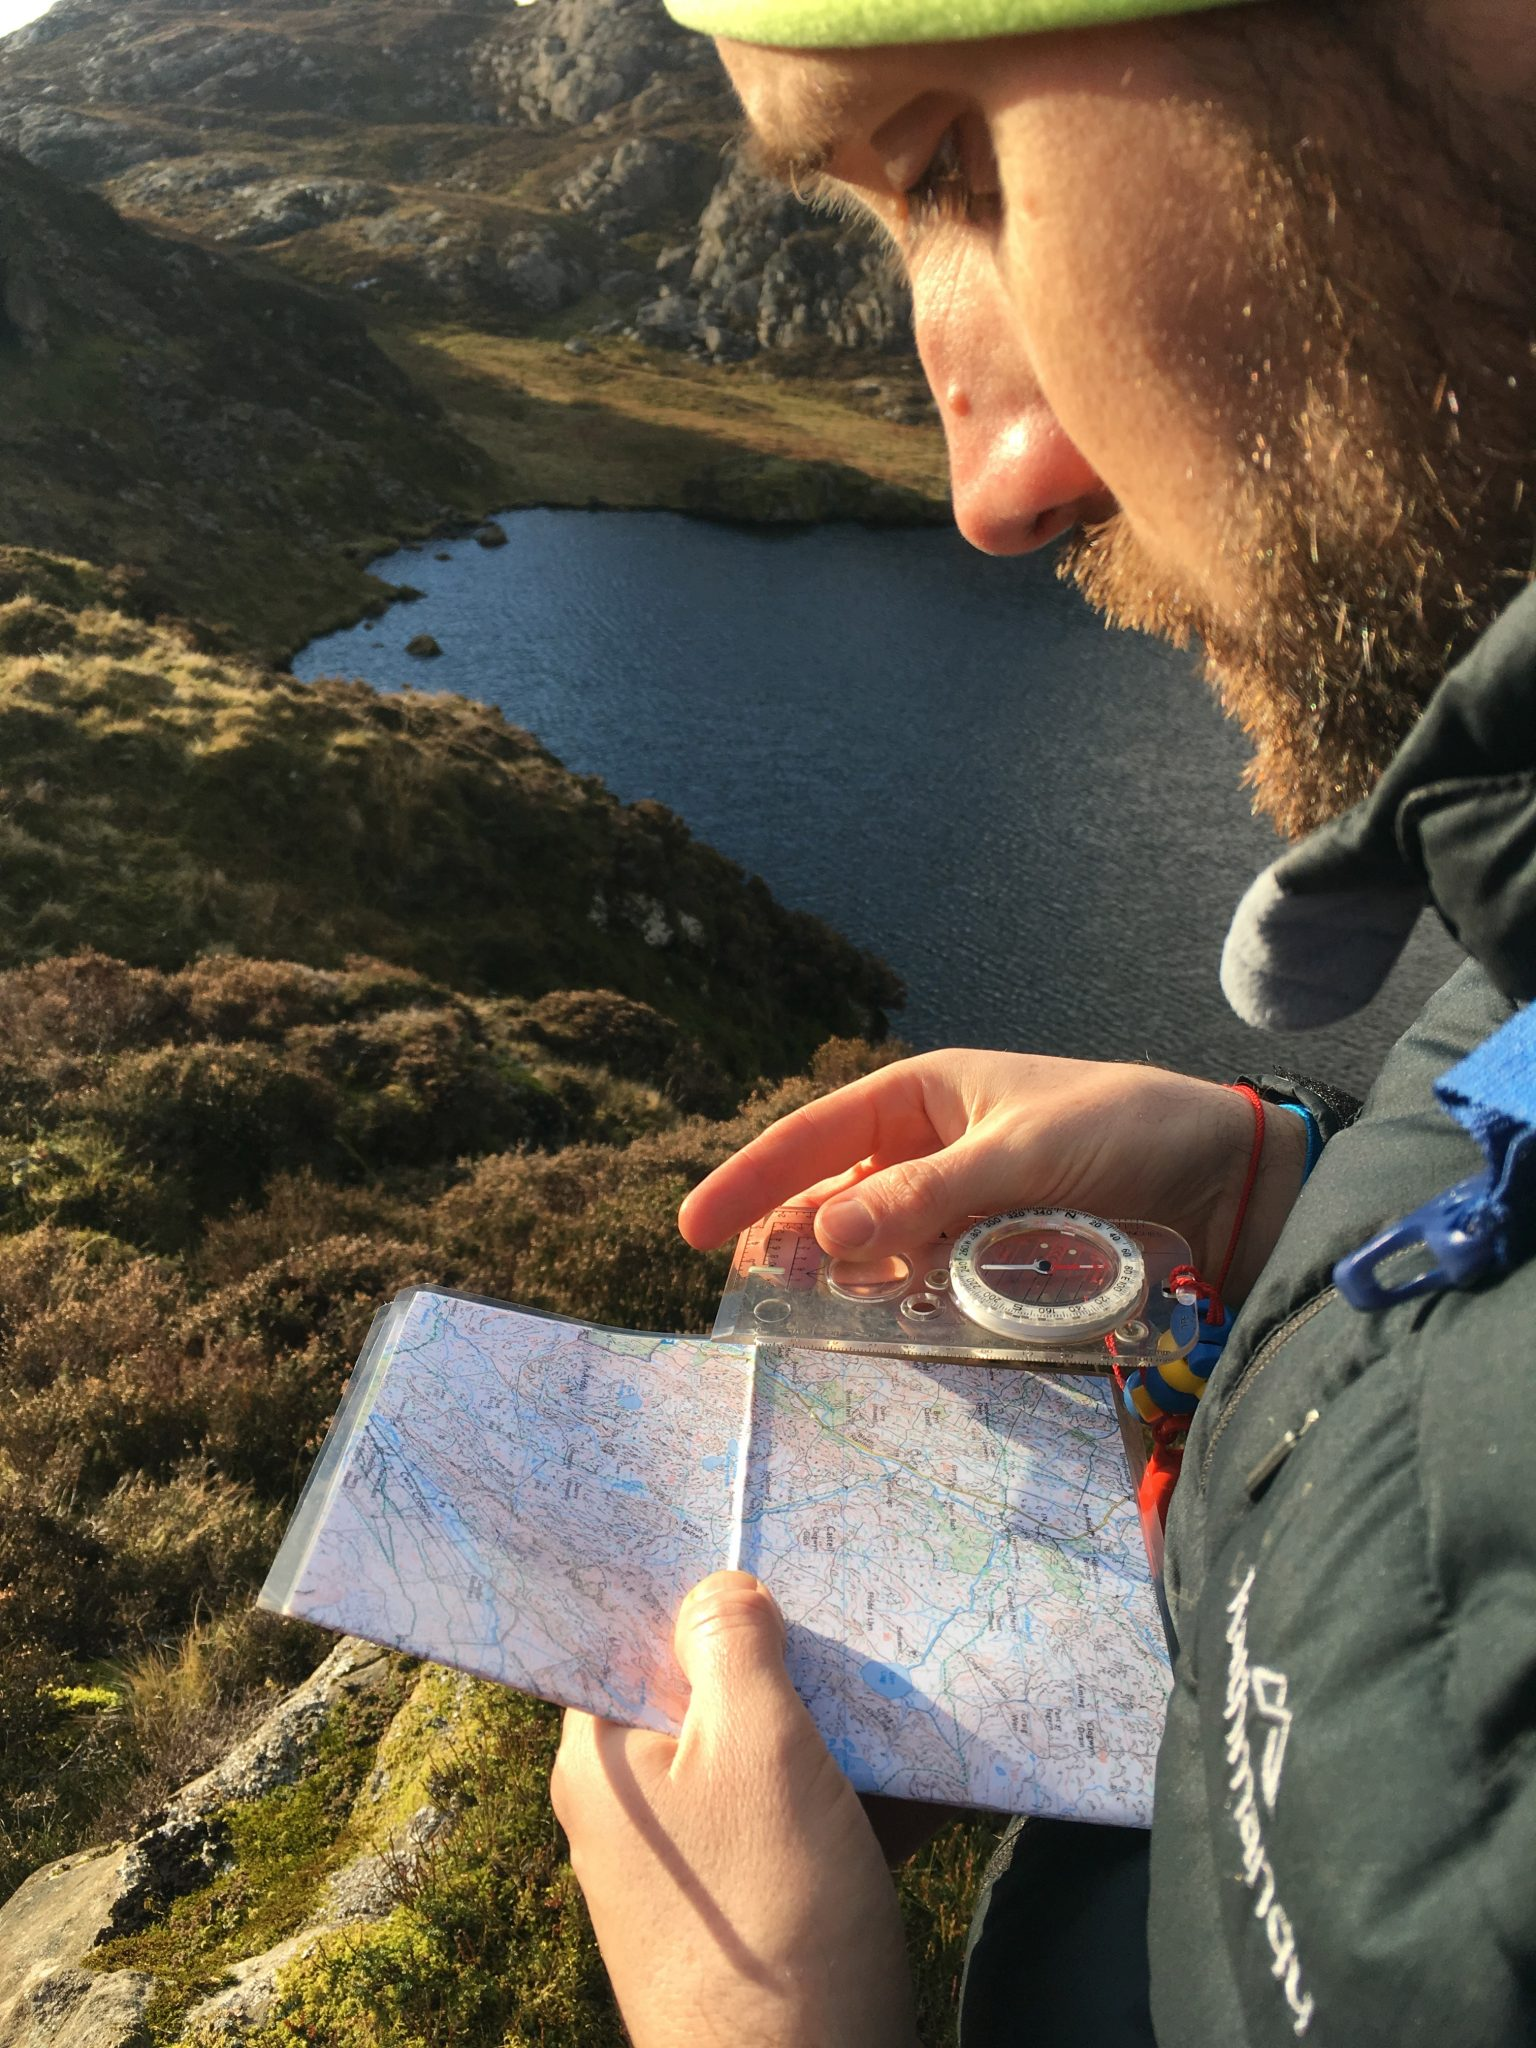 A student takes a compass bearing from a map during a mountain navigation course in Snowdonia